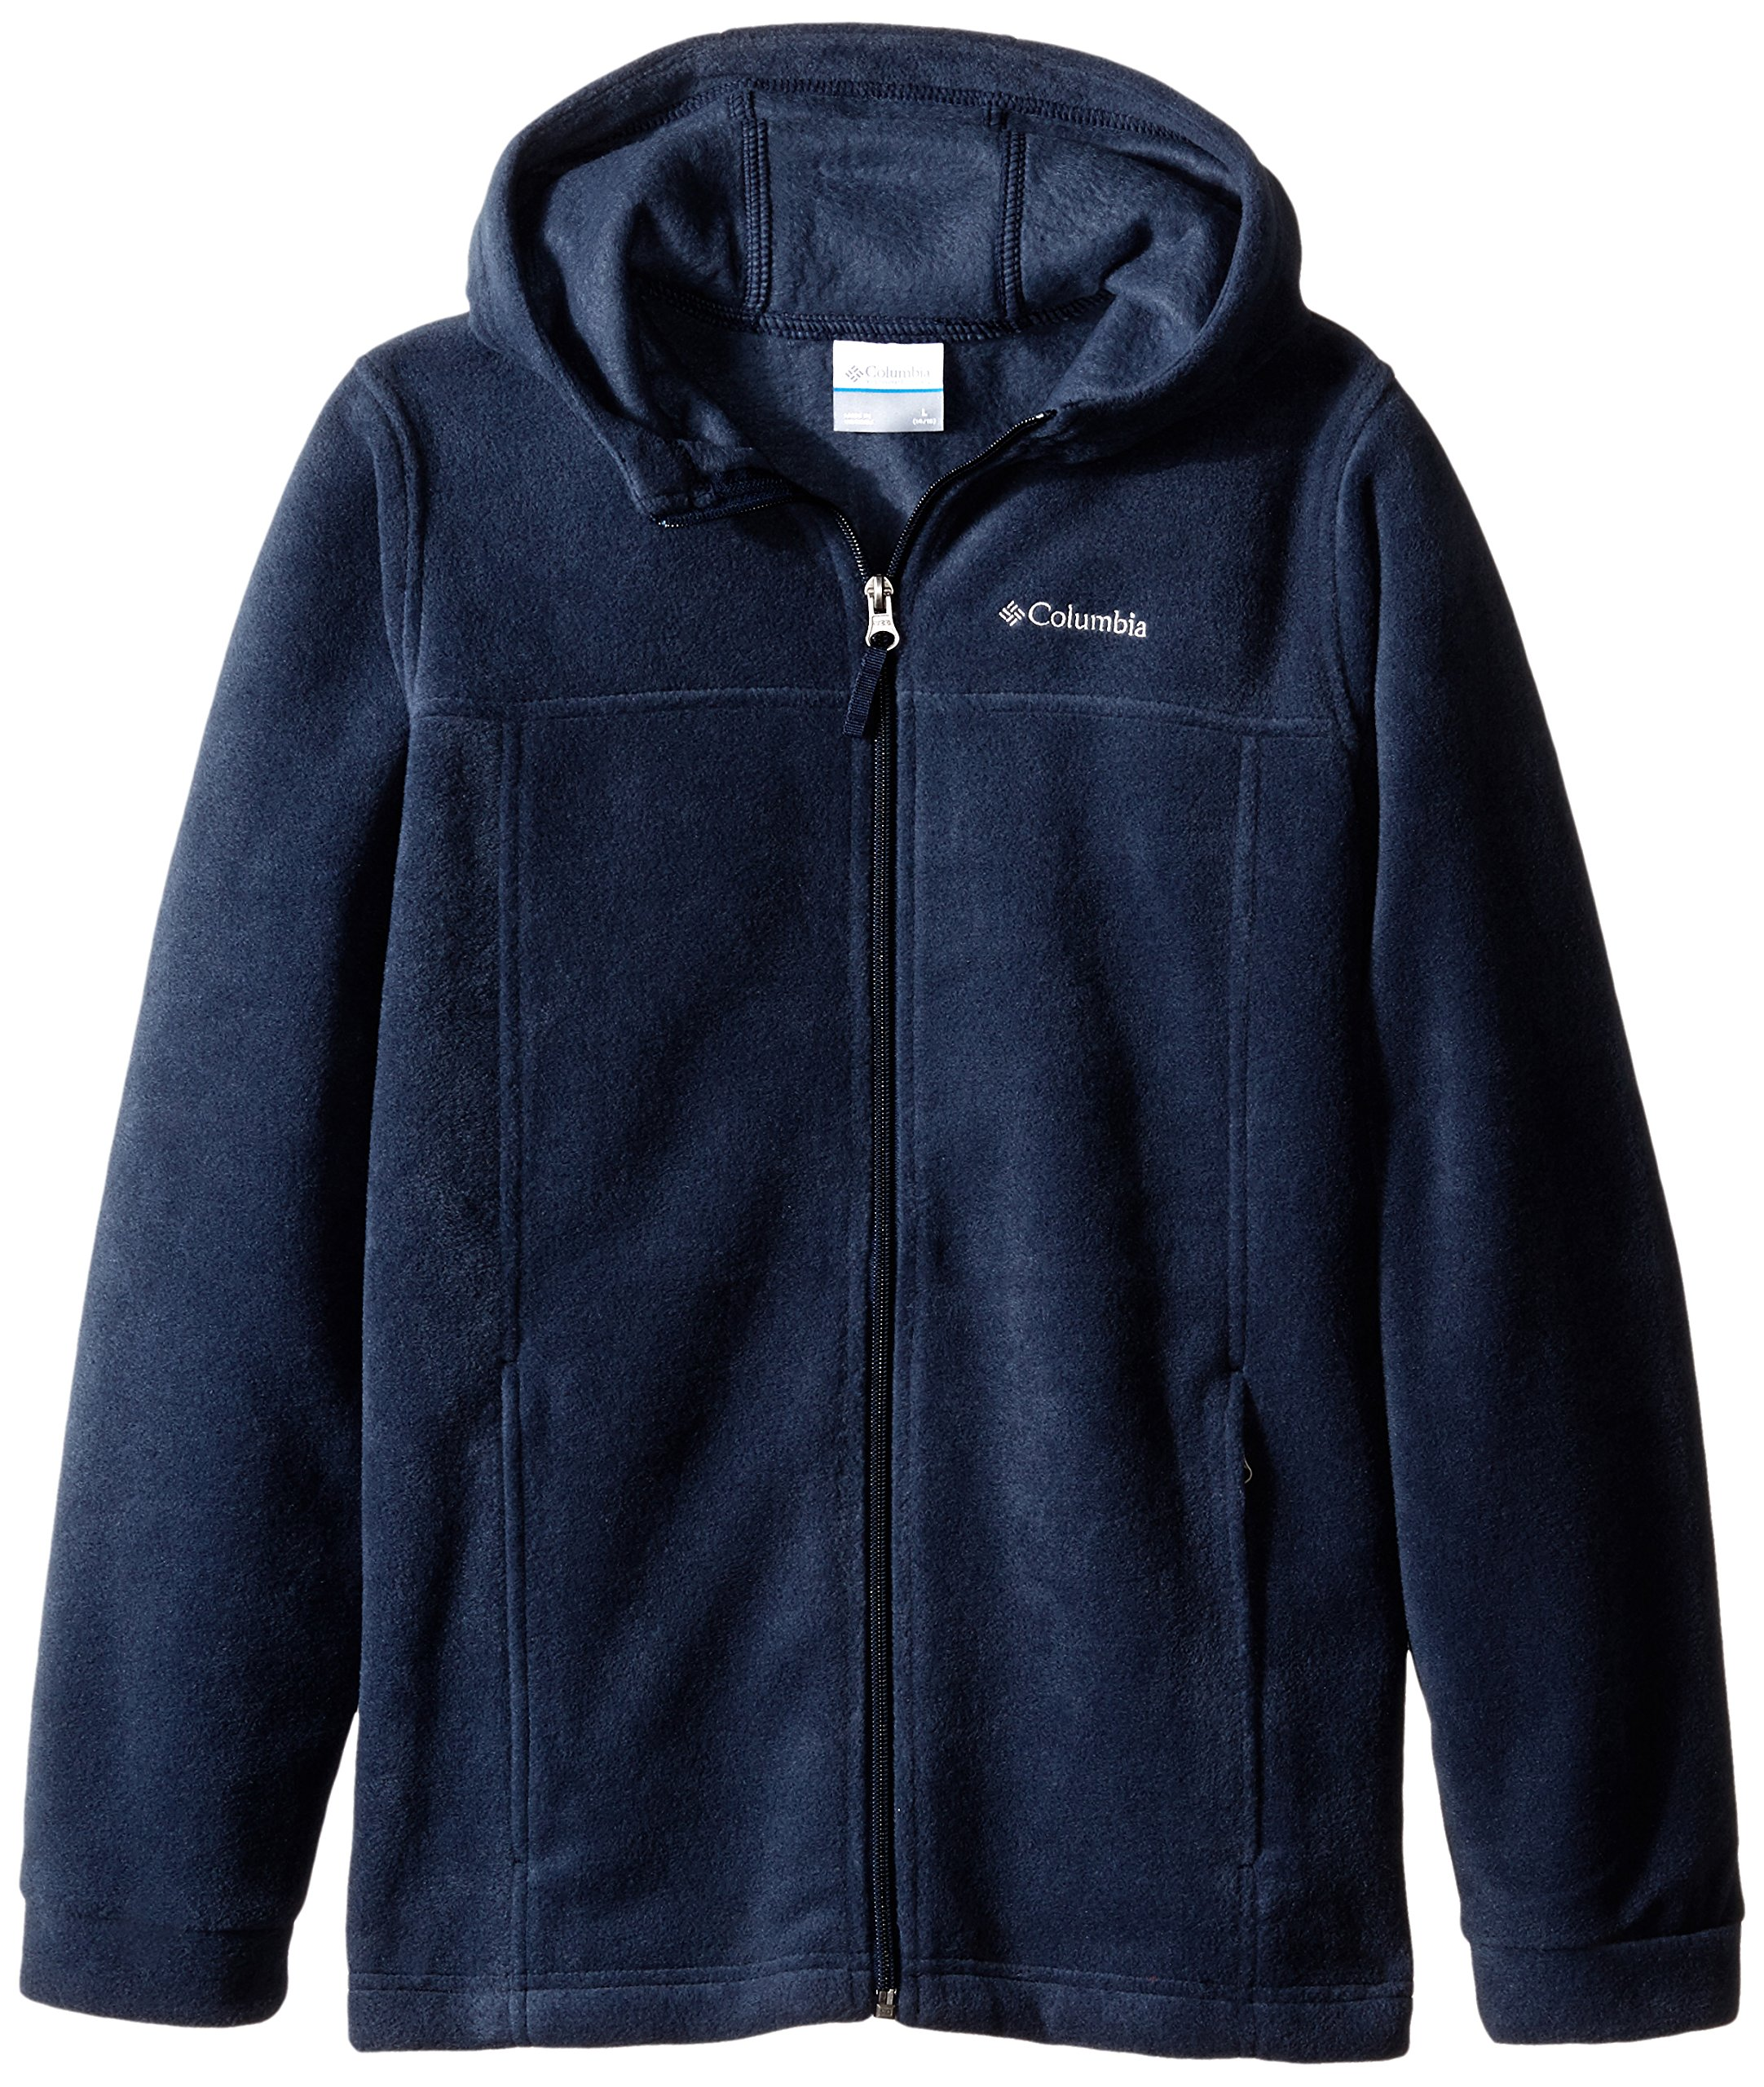 Columbia Big Boys' Steens II Fleece Hoodie, Collegiate Navy, Small (8)